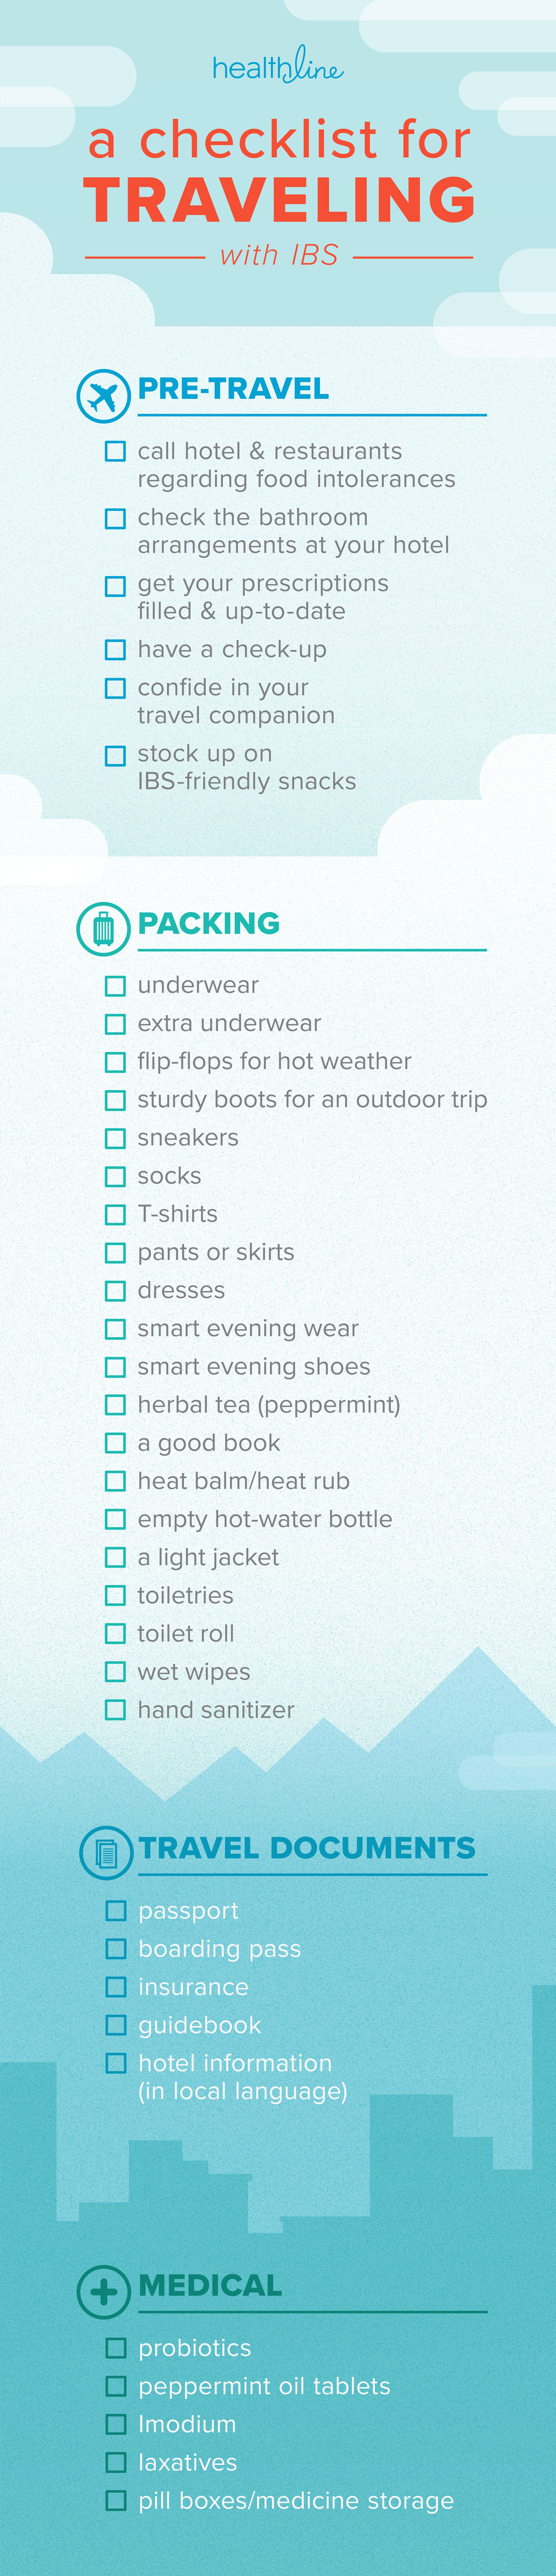 ibs travel checklist